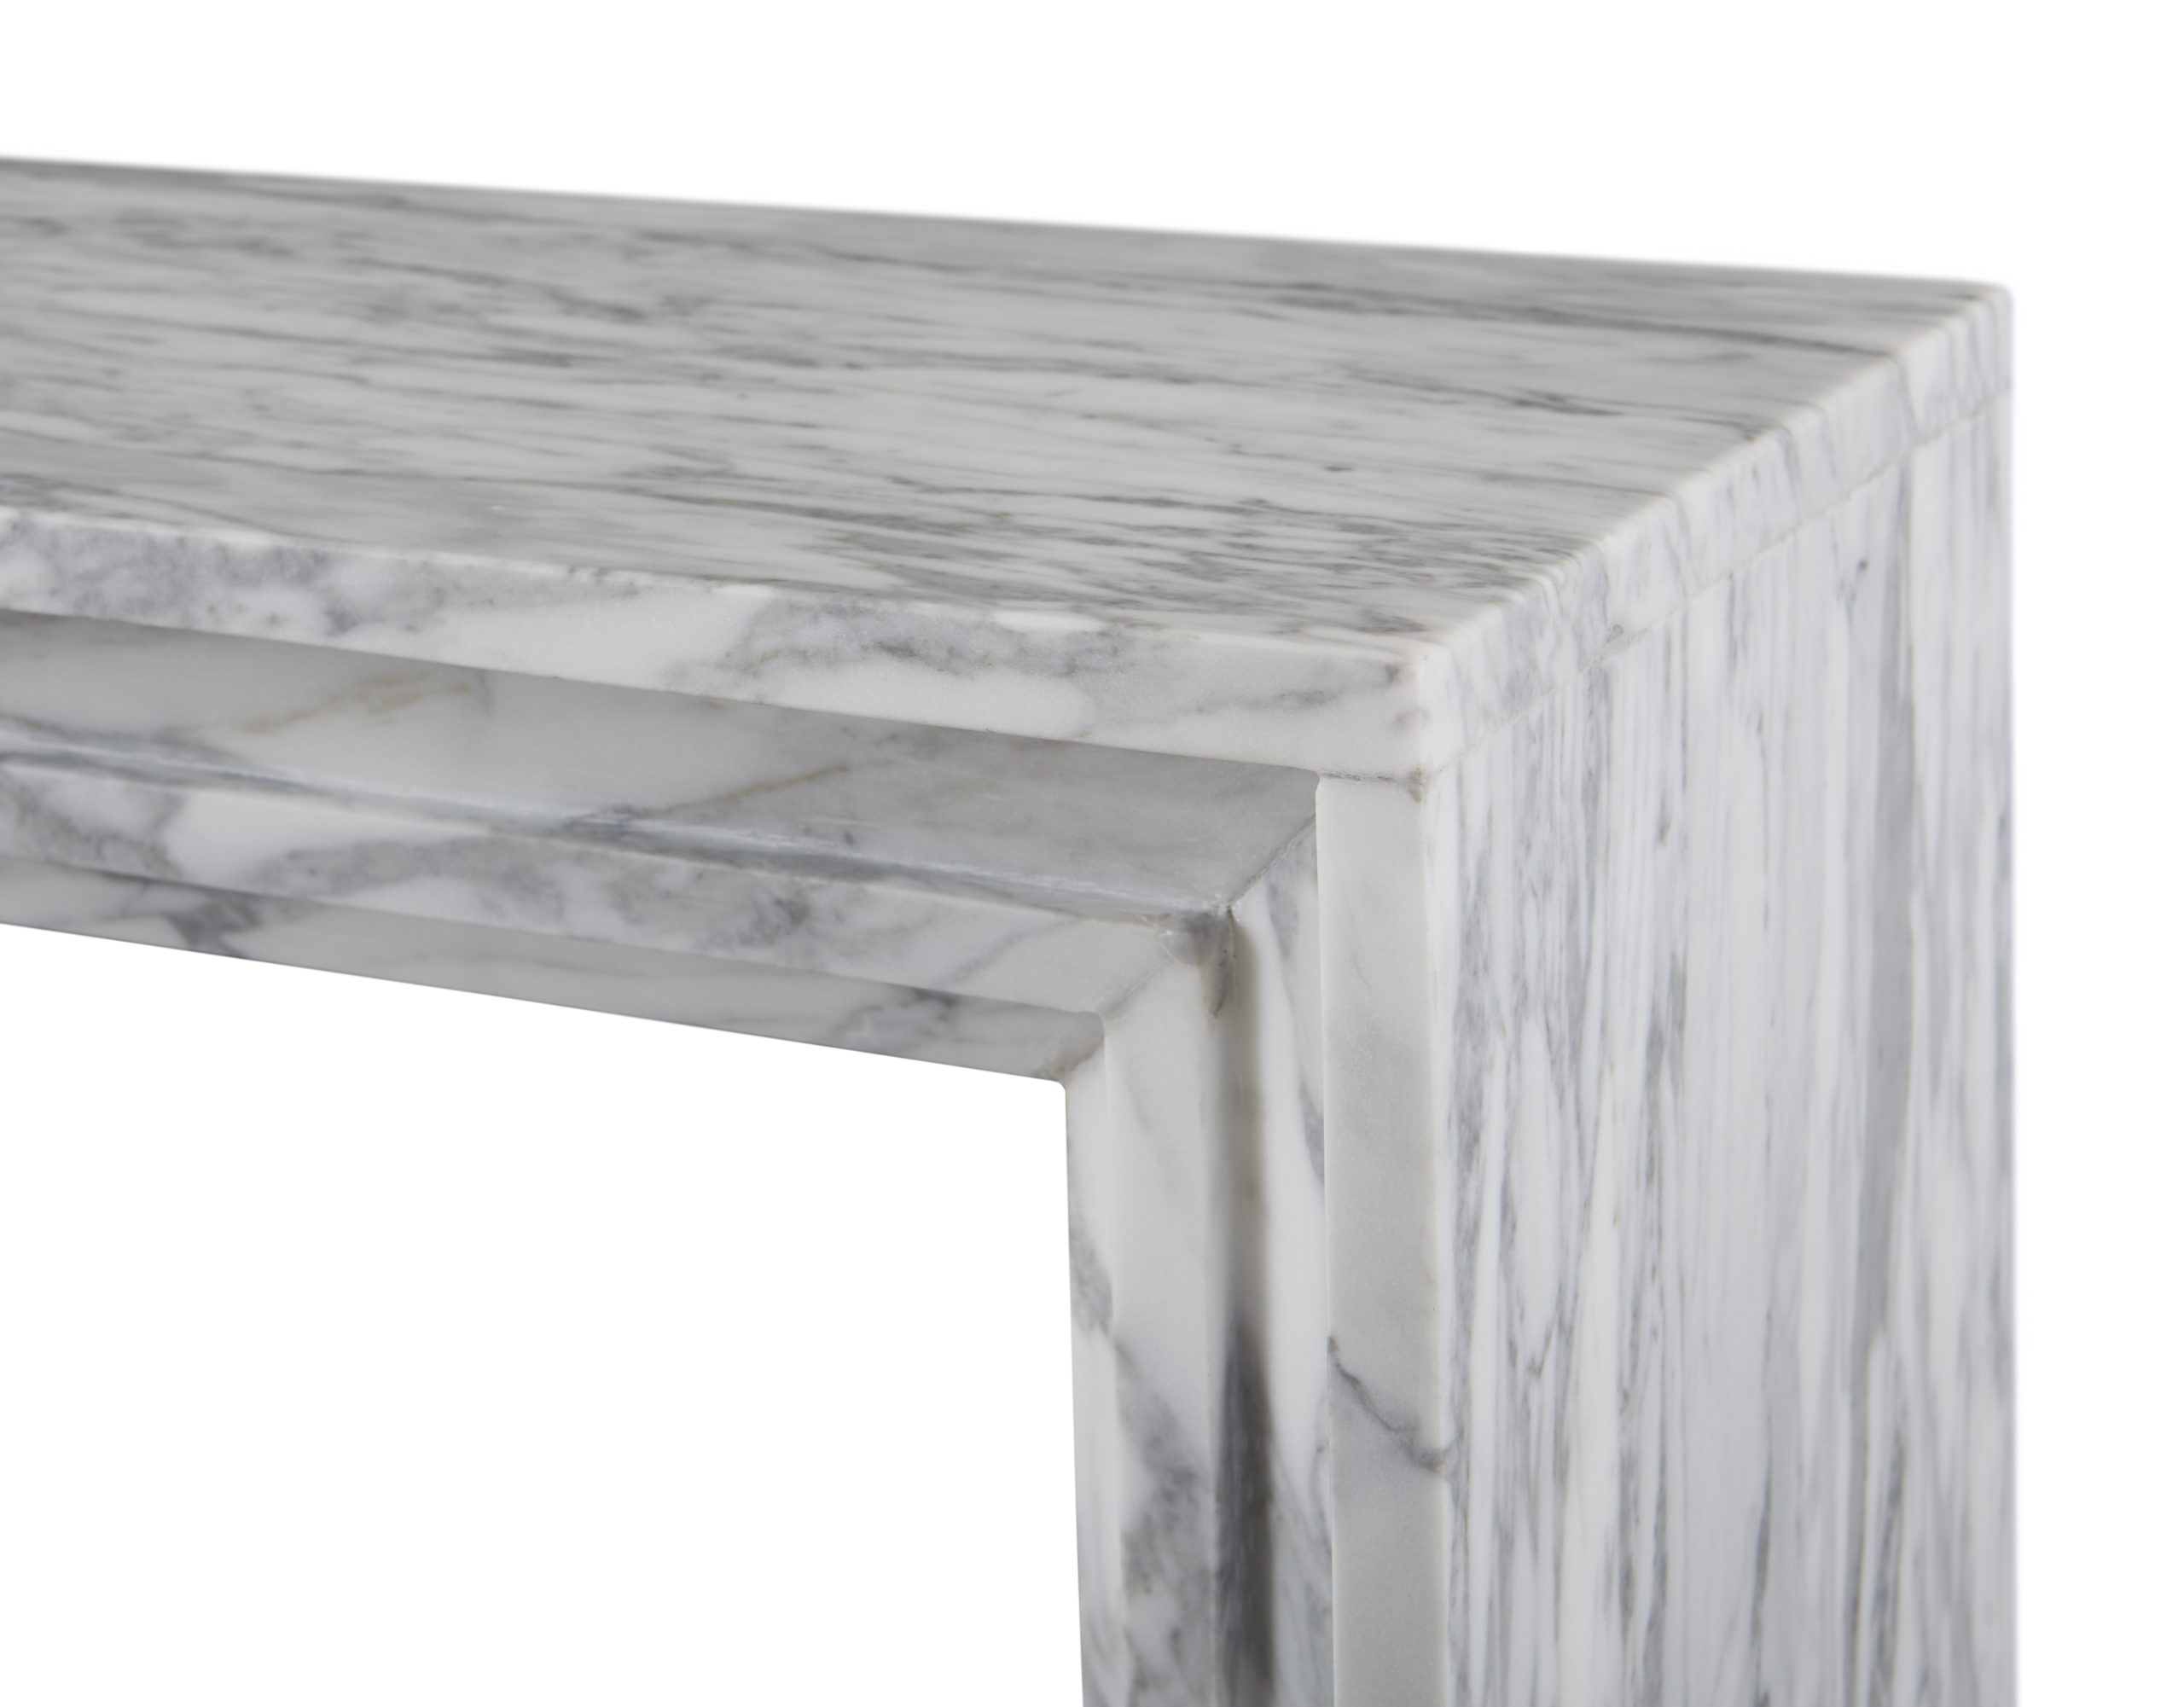 Baker_products_WNWN_angelo_console_BAA3063_DETAIL-scaled-2